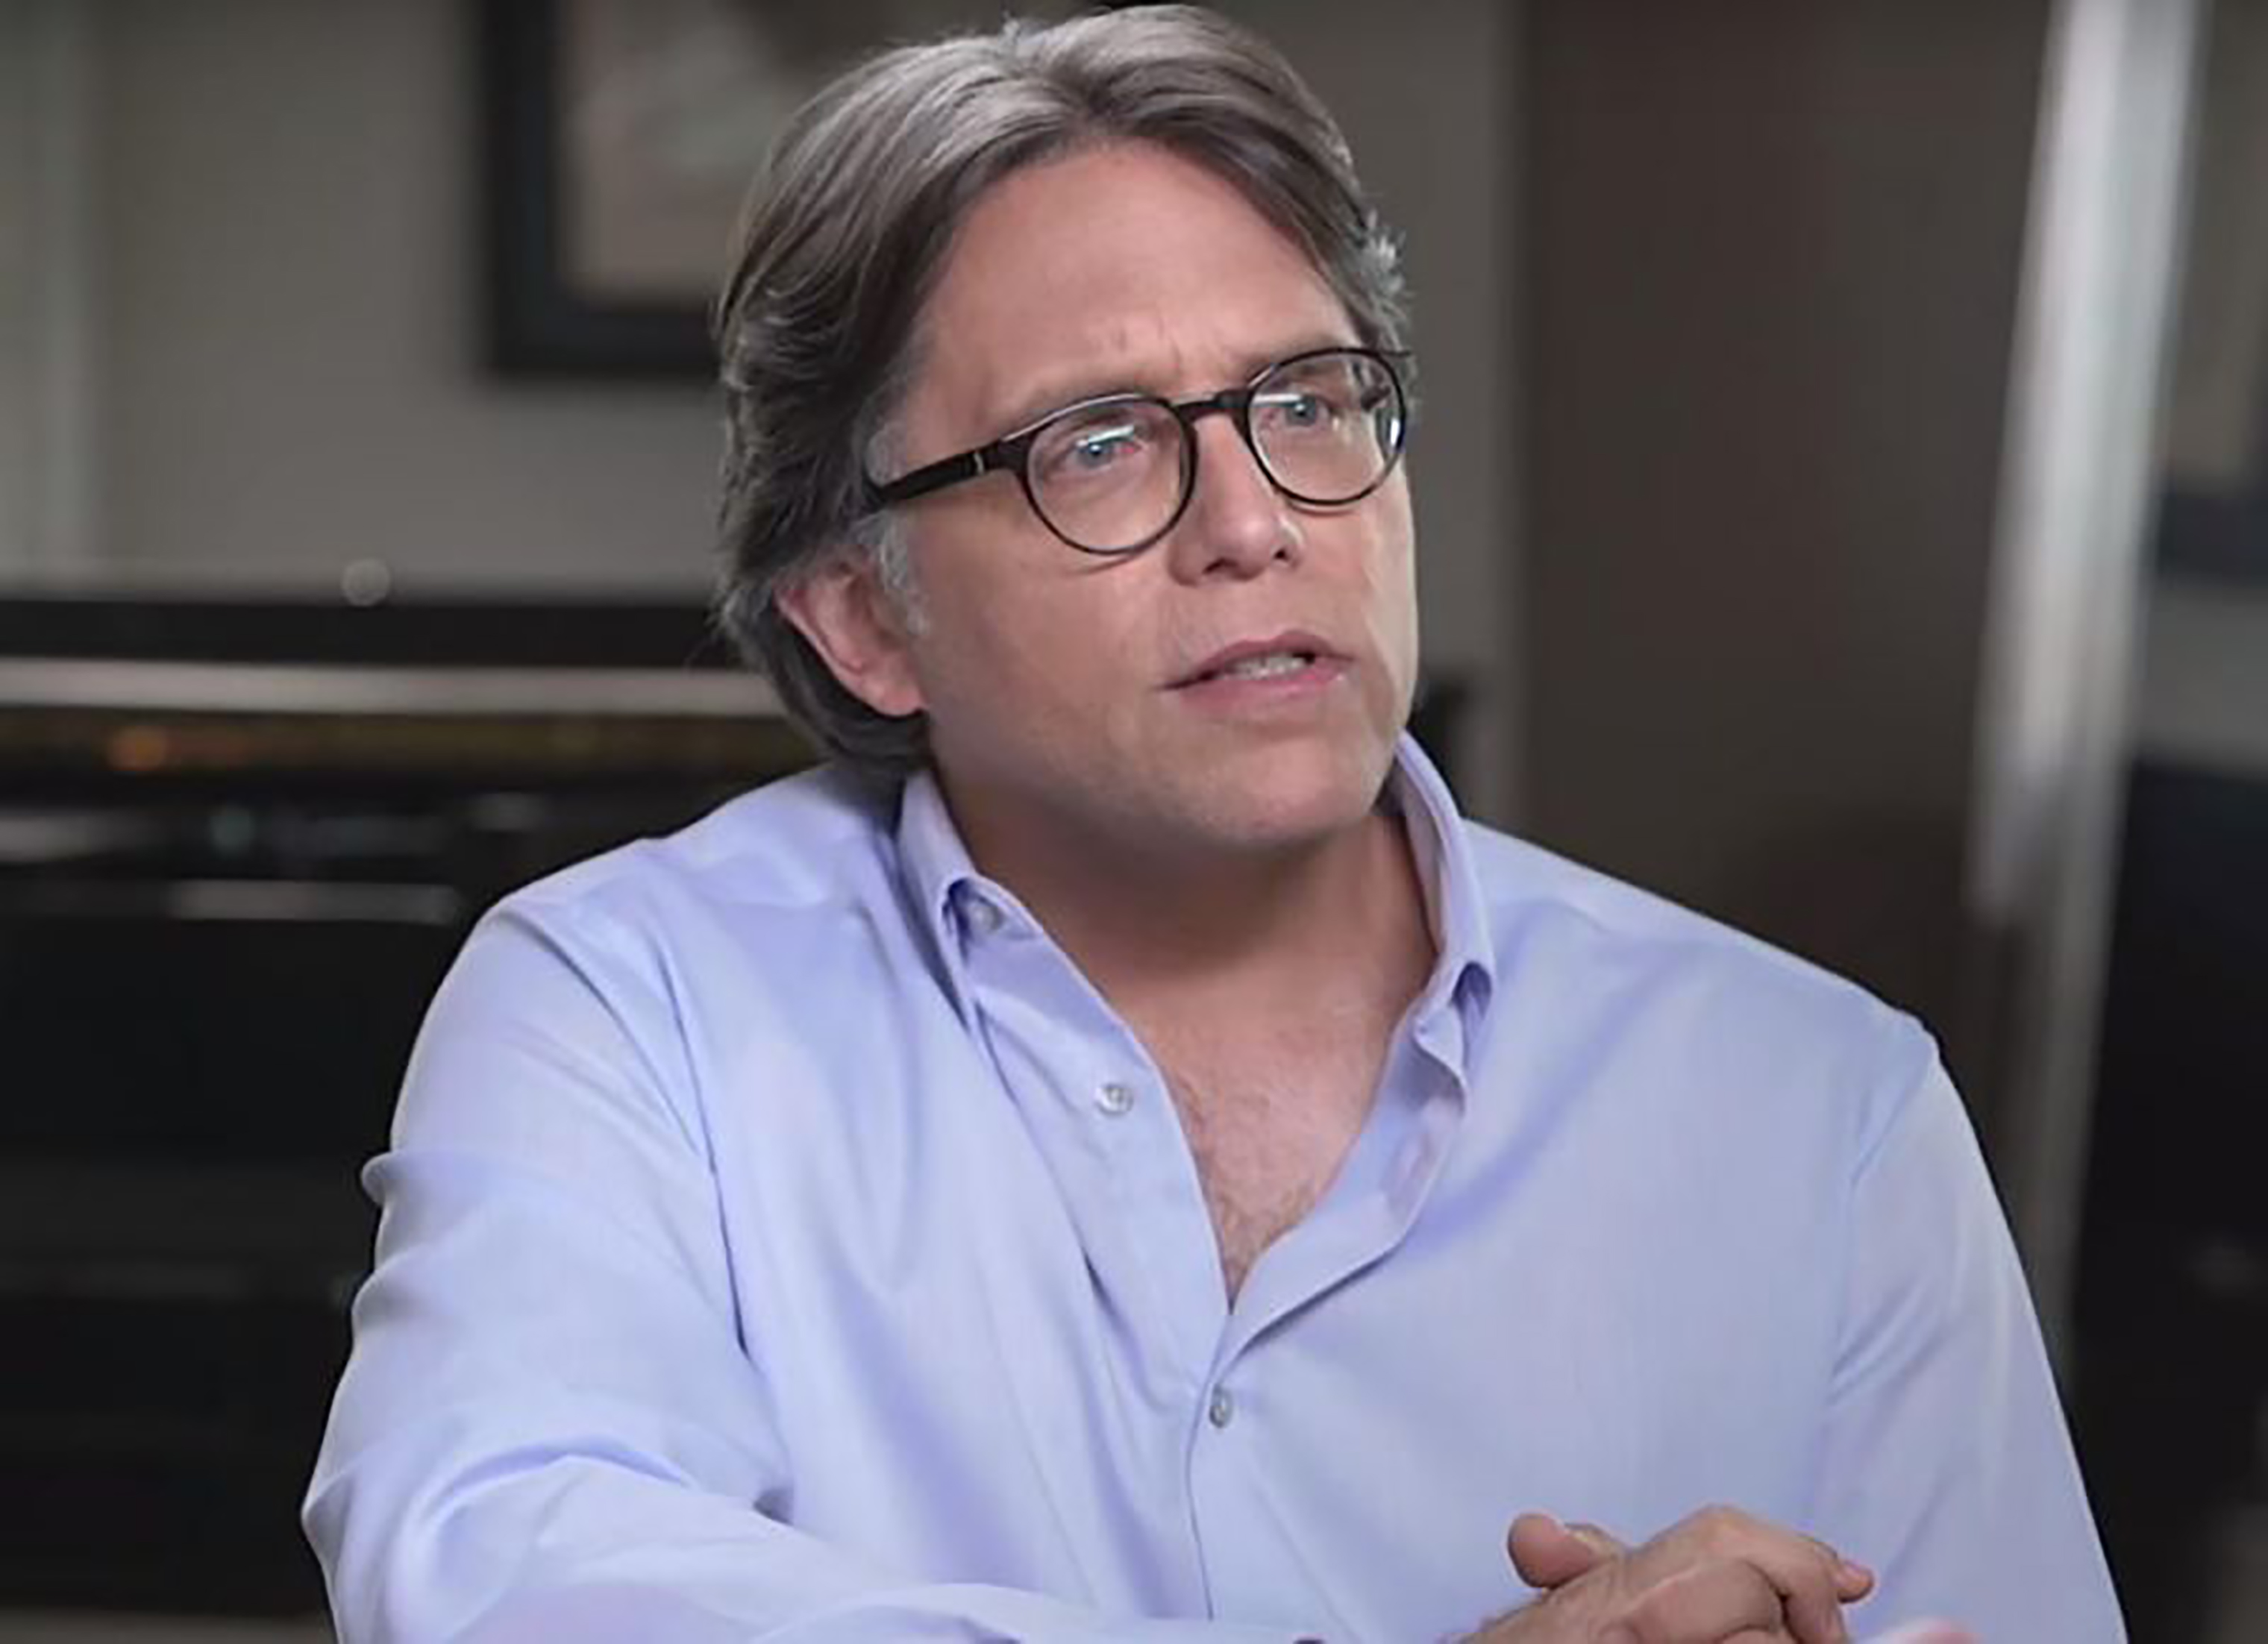 Keith Raniere appears in a YouTube video dated January 26, 2017. The founder of NXIVM has been arrested on charges of sex trafficking.